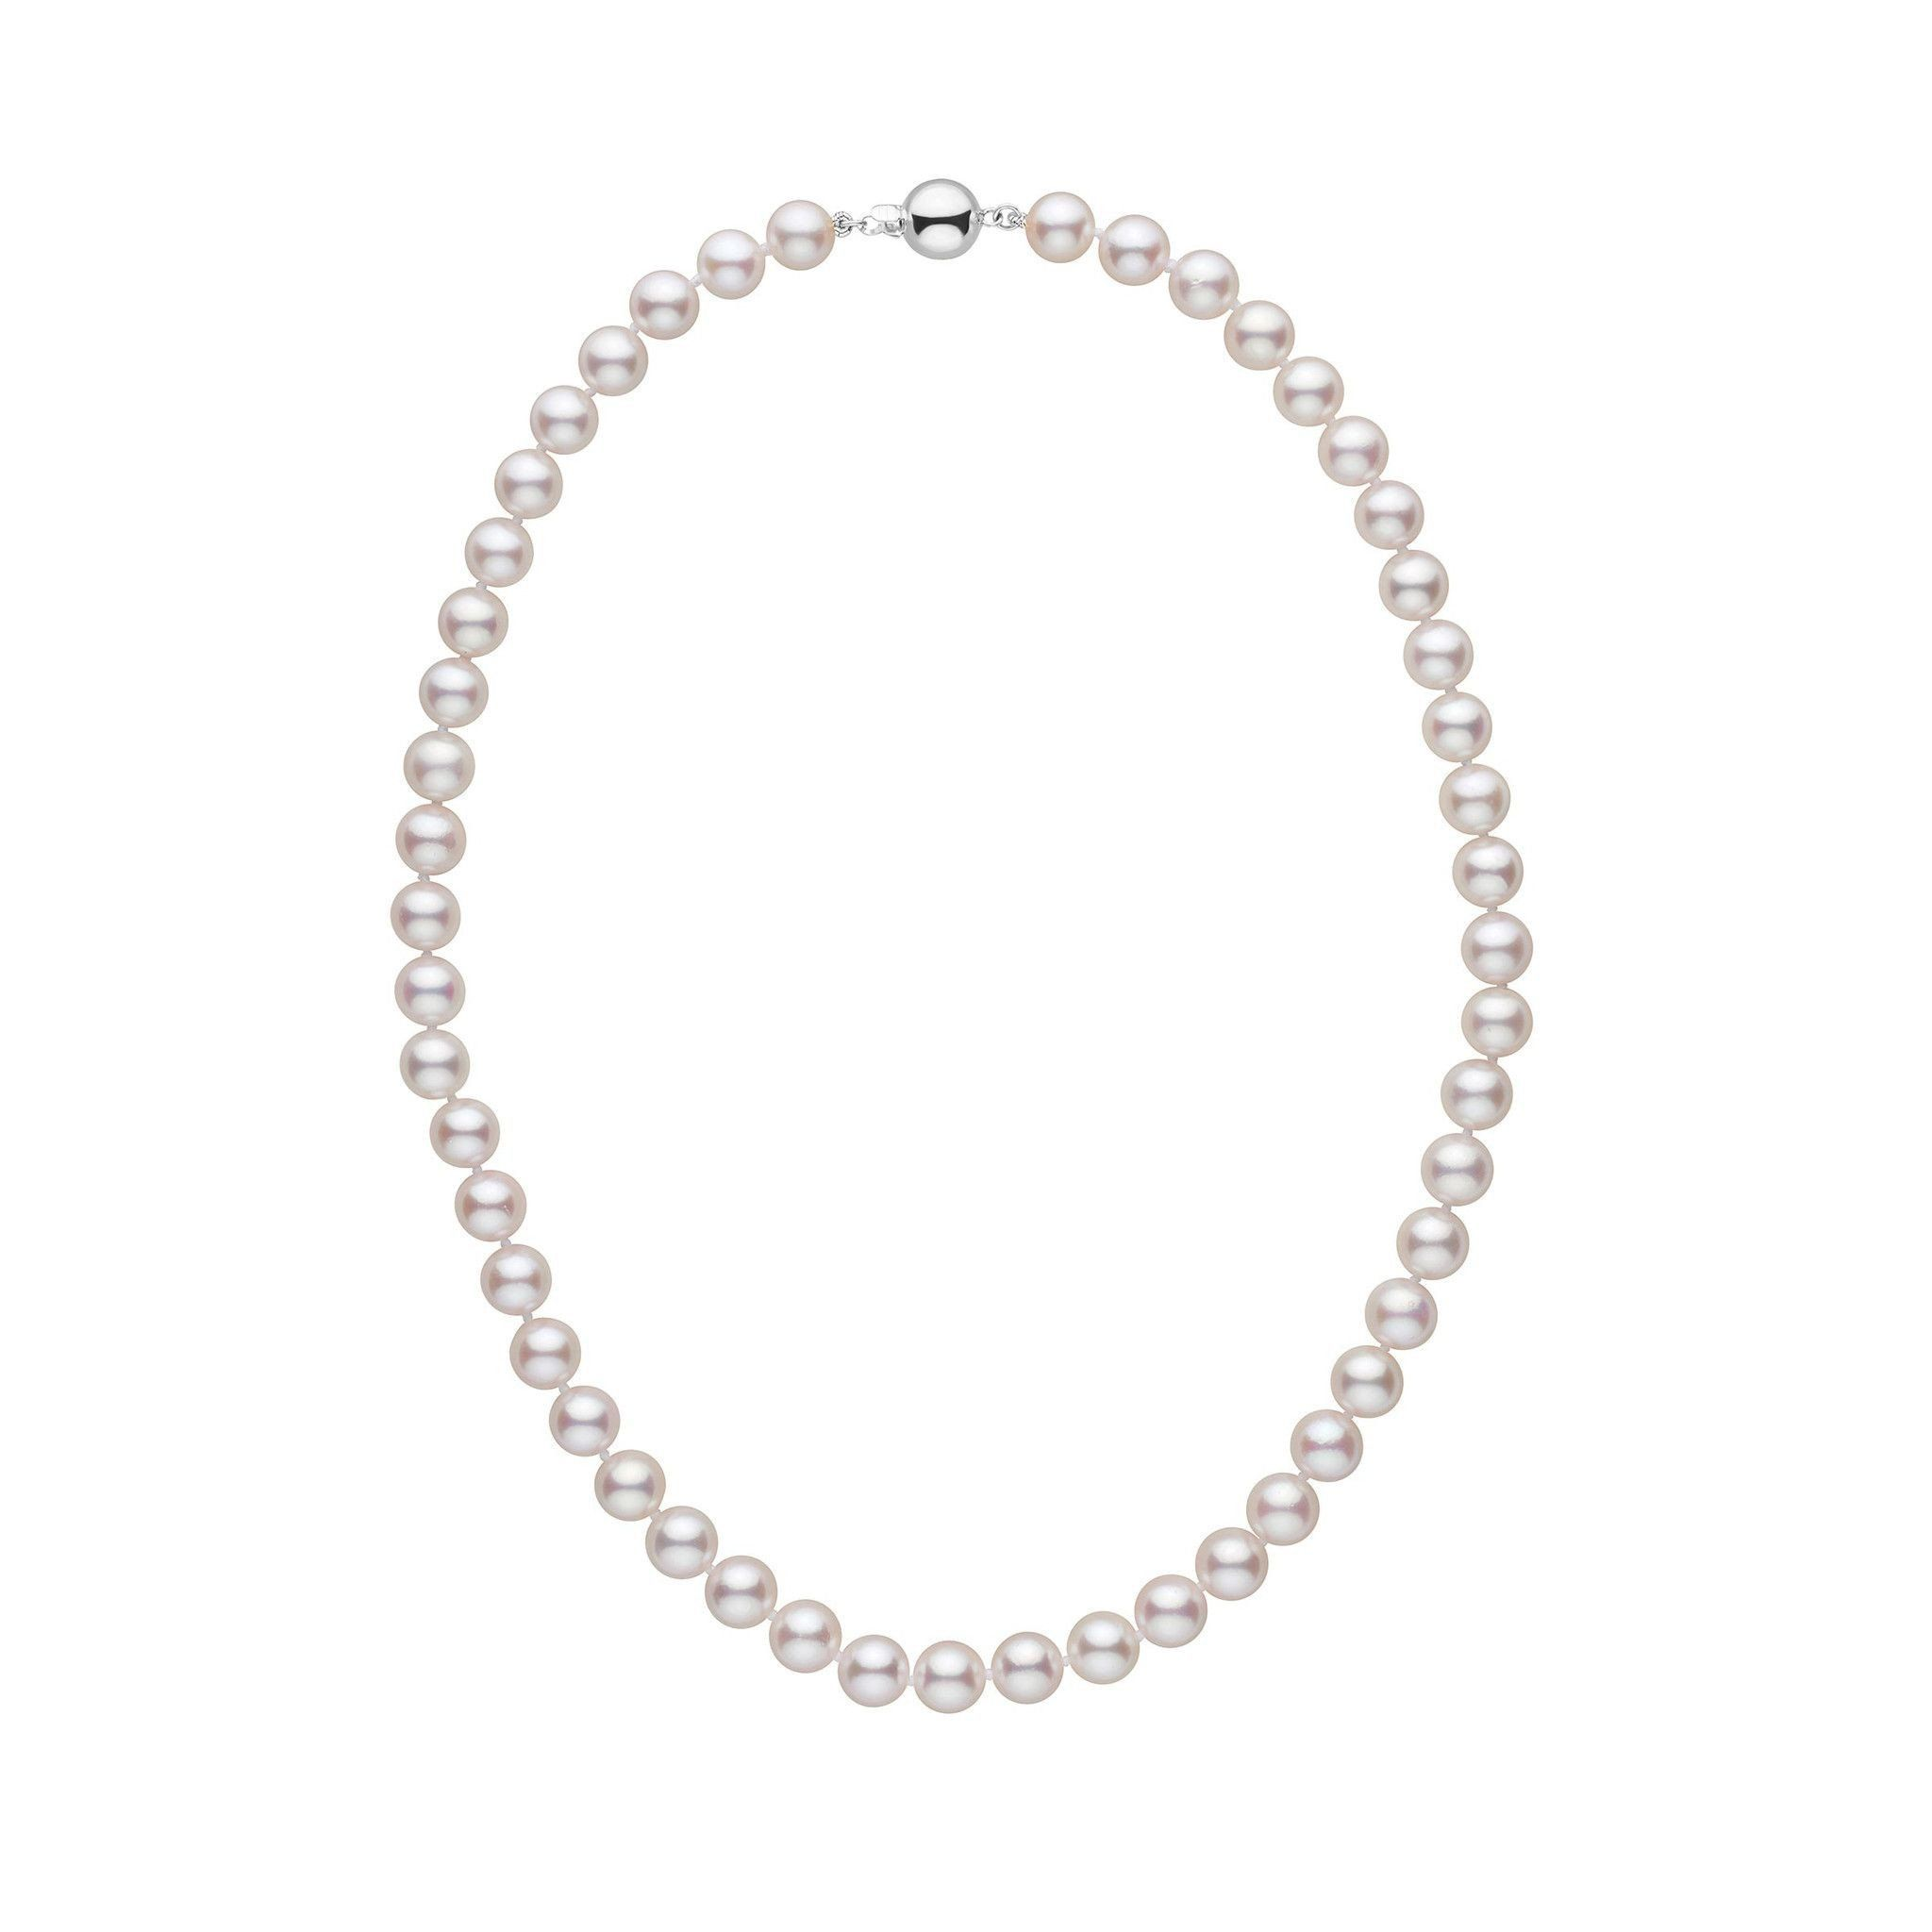 7.5-8.0 mm 16 inch AAA White Akoya Pearl Necklace